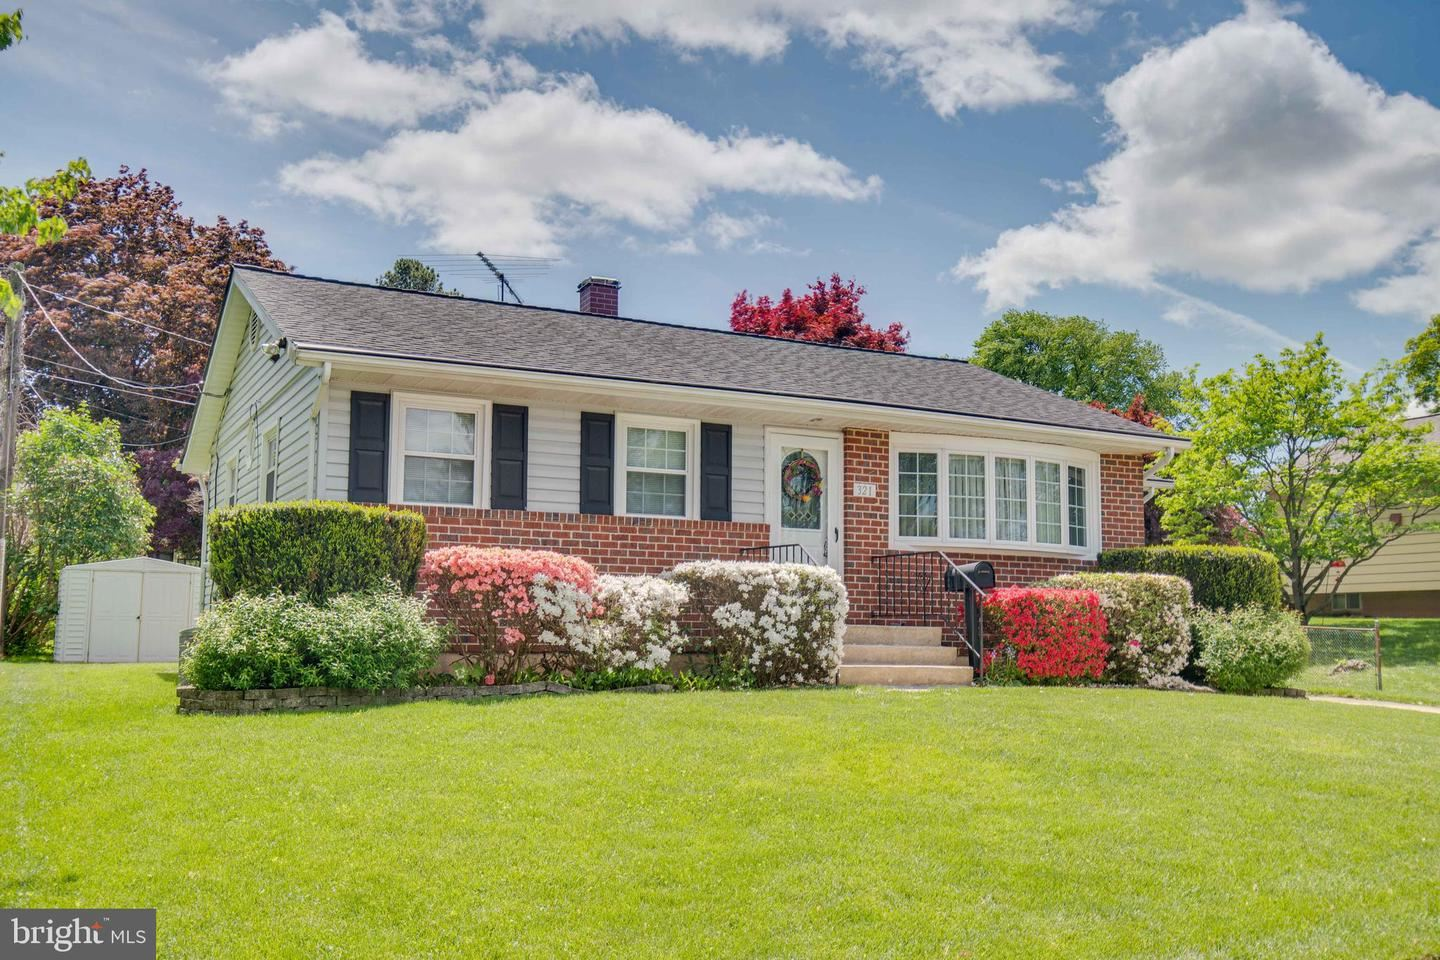 321 STONECASTLE AVE, Reisterstown, MD 21136 - MLS#: MDBC526976